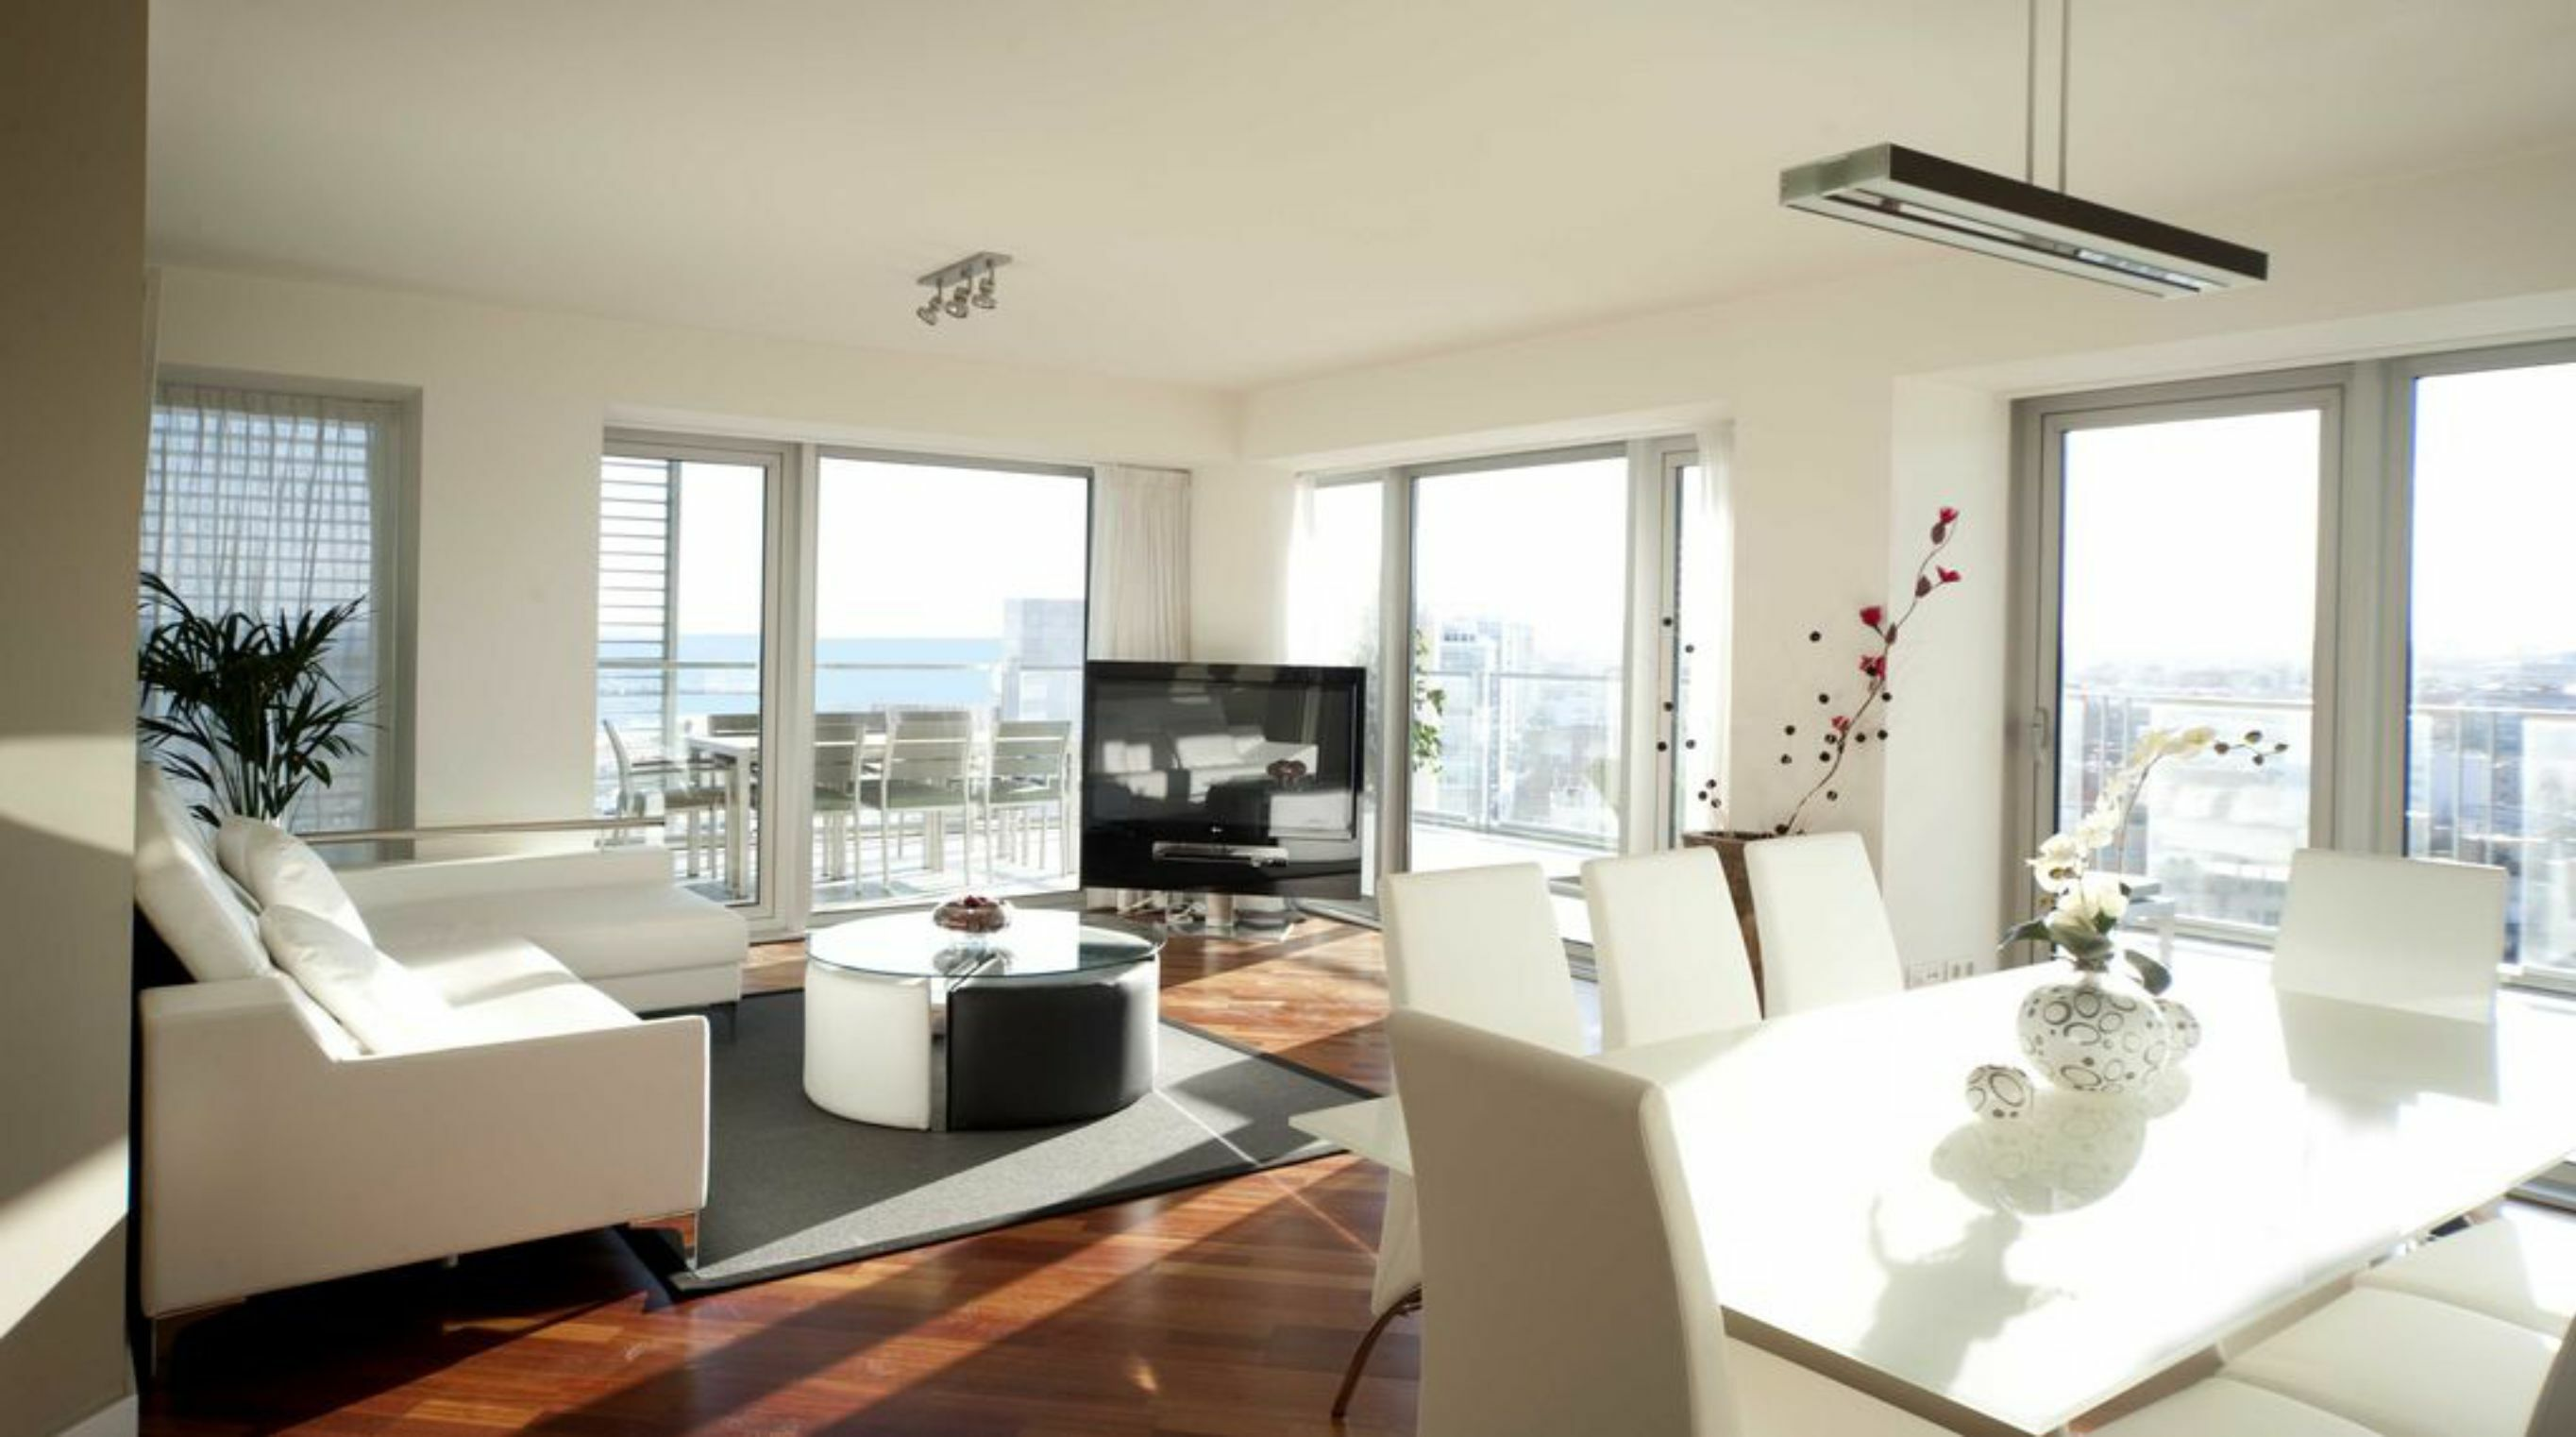 Five Bedroom Apartment, Sleeps 10, Sea and City View Terrace